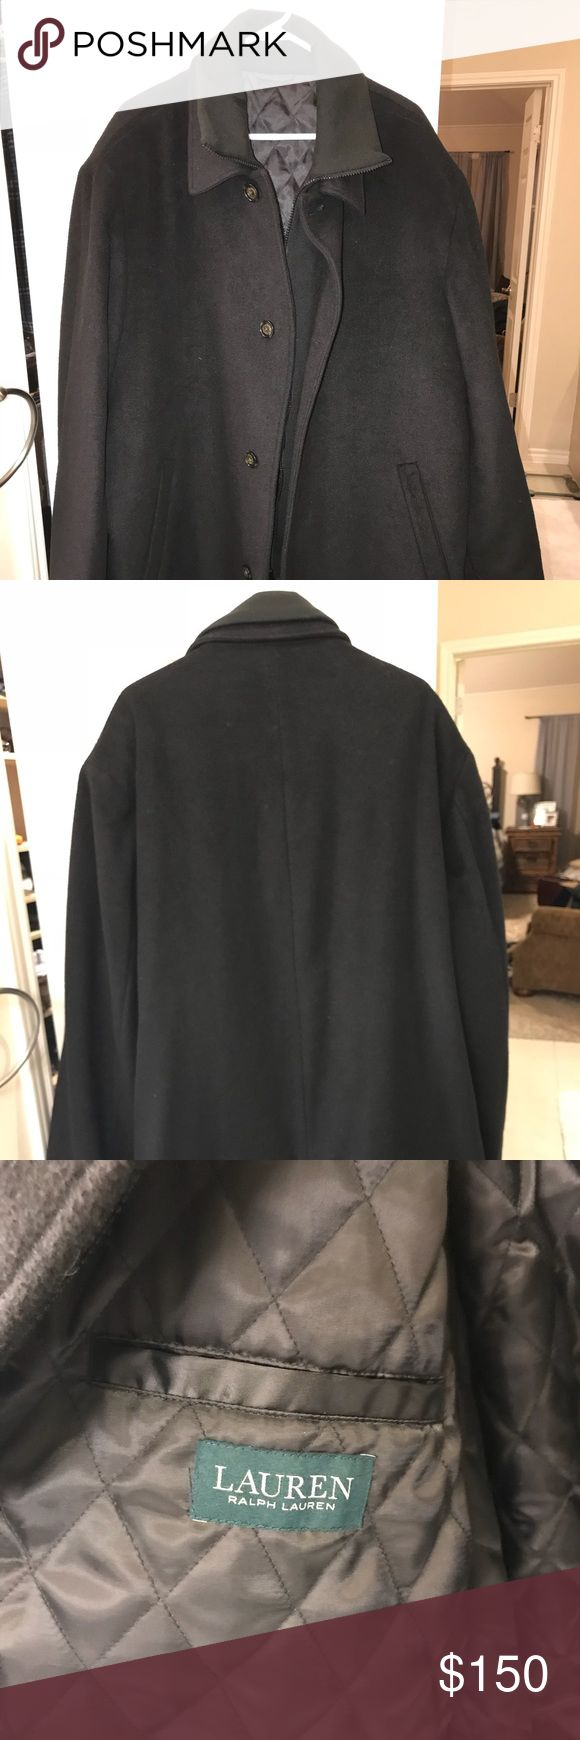 Ralph Lauren Men's Navy Pea Coat Fully lined, wool pea coat, only worn once for a business weekend. Pockets inside and out. Size 54R, my husband wears 3XL in shirts. Lauren Ralph Lauren Jackets & Coats Pea Coats